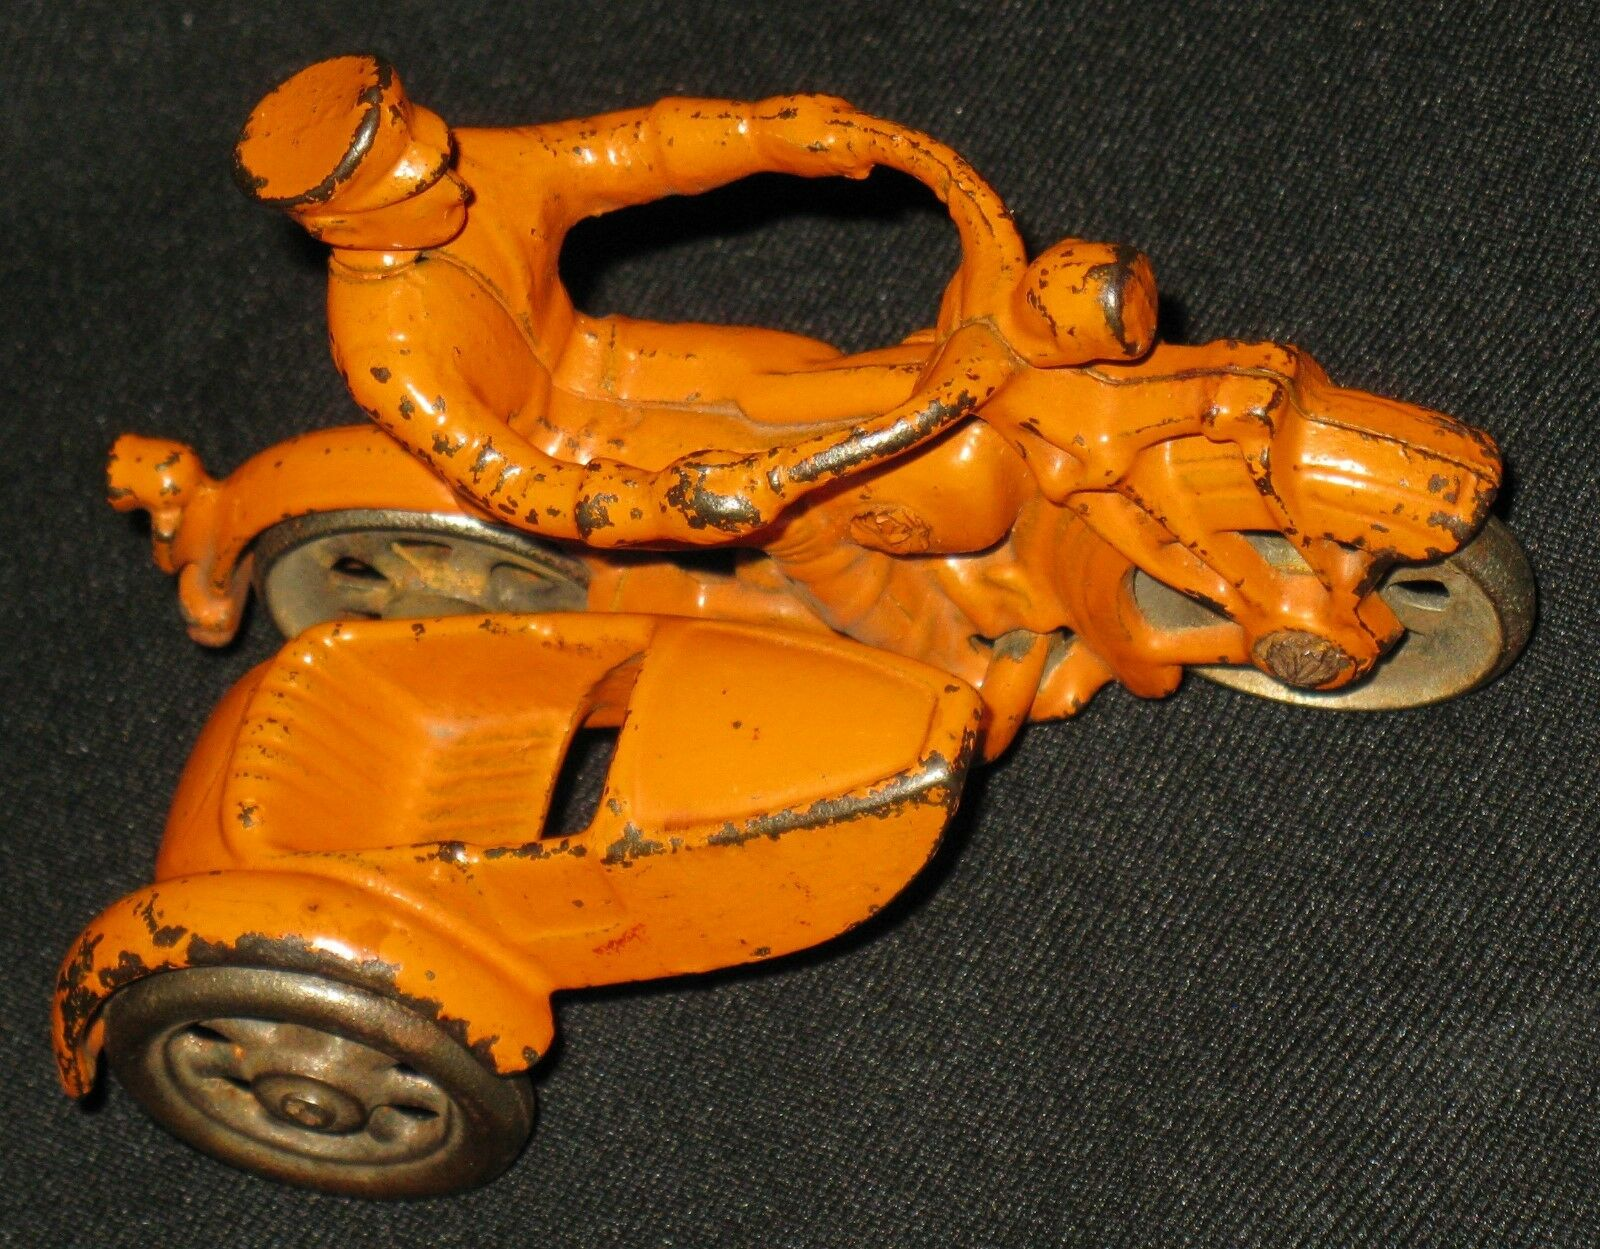 VINTAGE ORIGINAL CAST METAL TOY MOTORCYCLE w SIDE CAR PRE-1940 SPOKE WHEELS